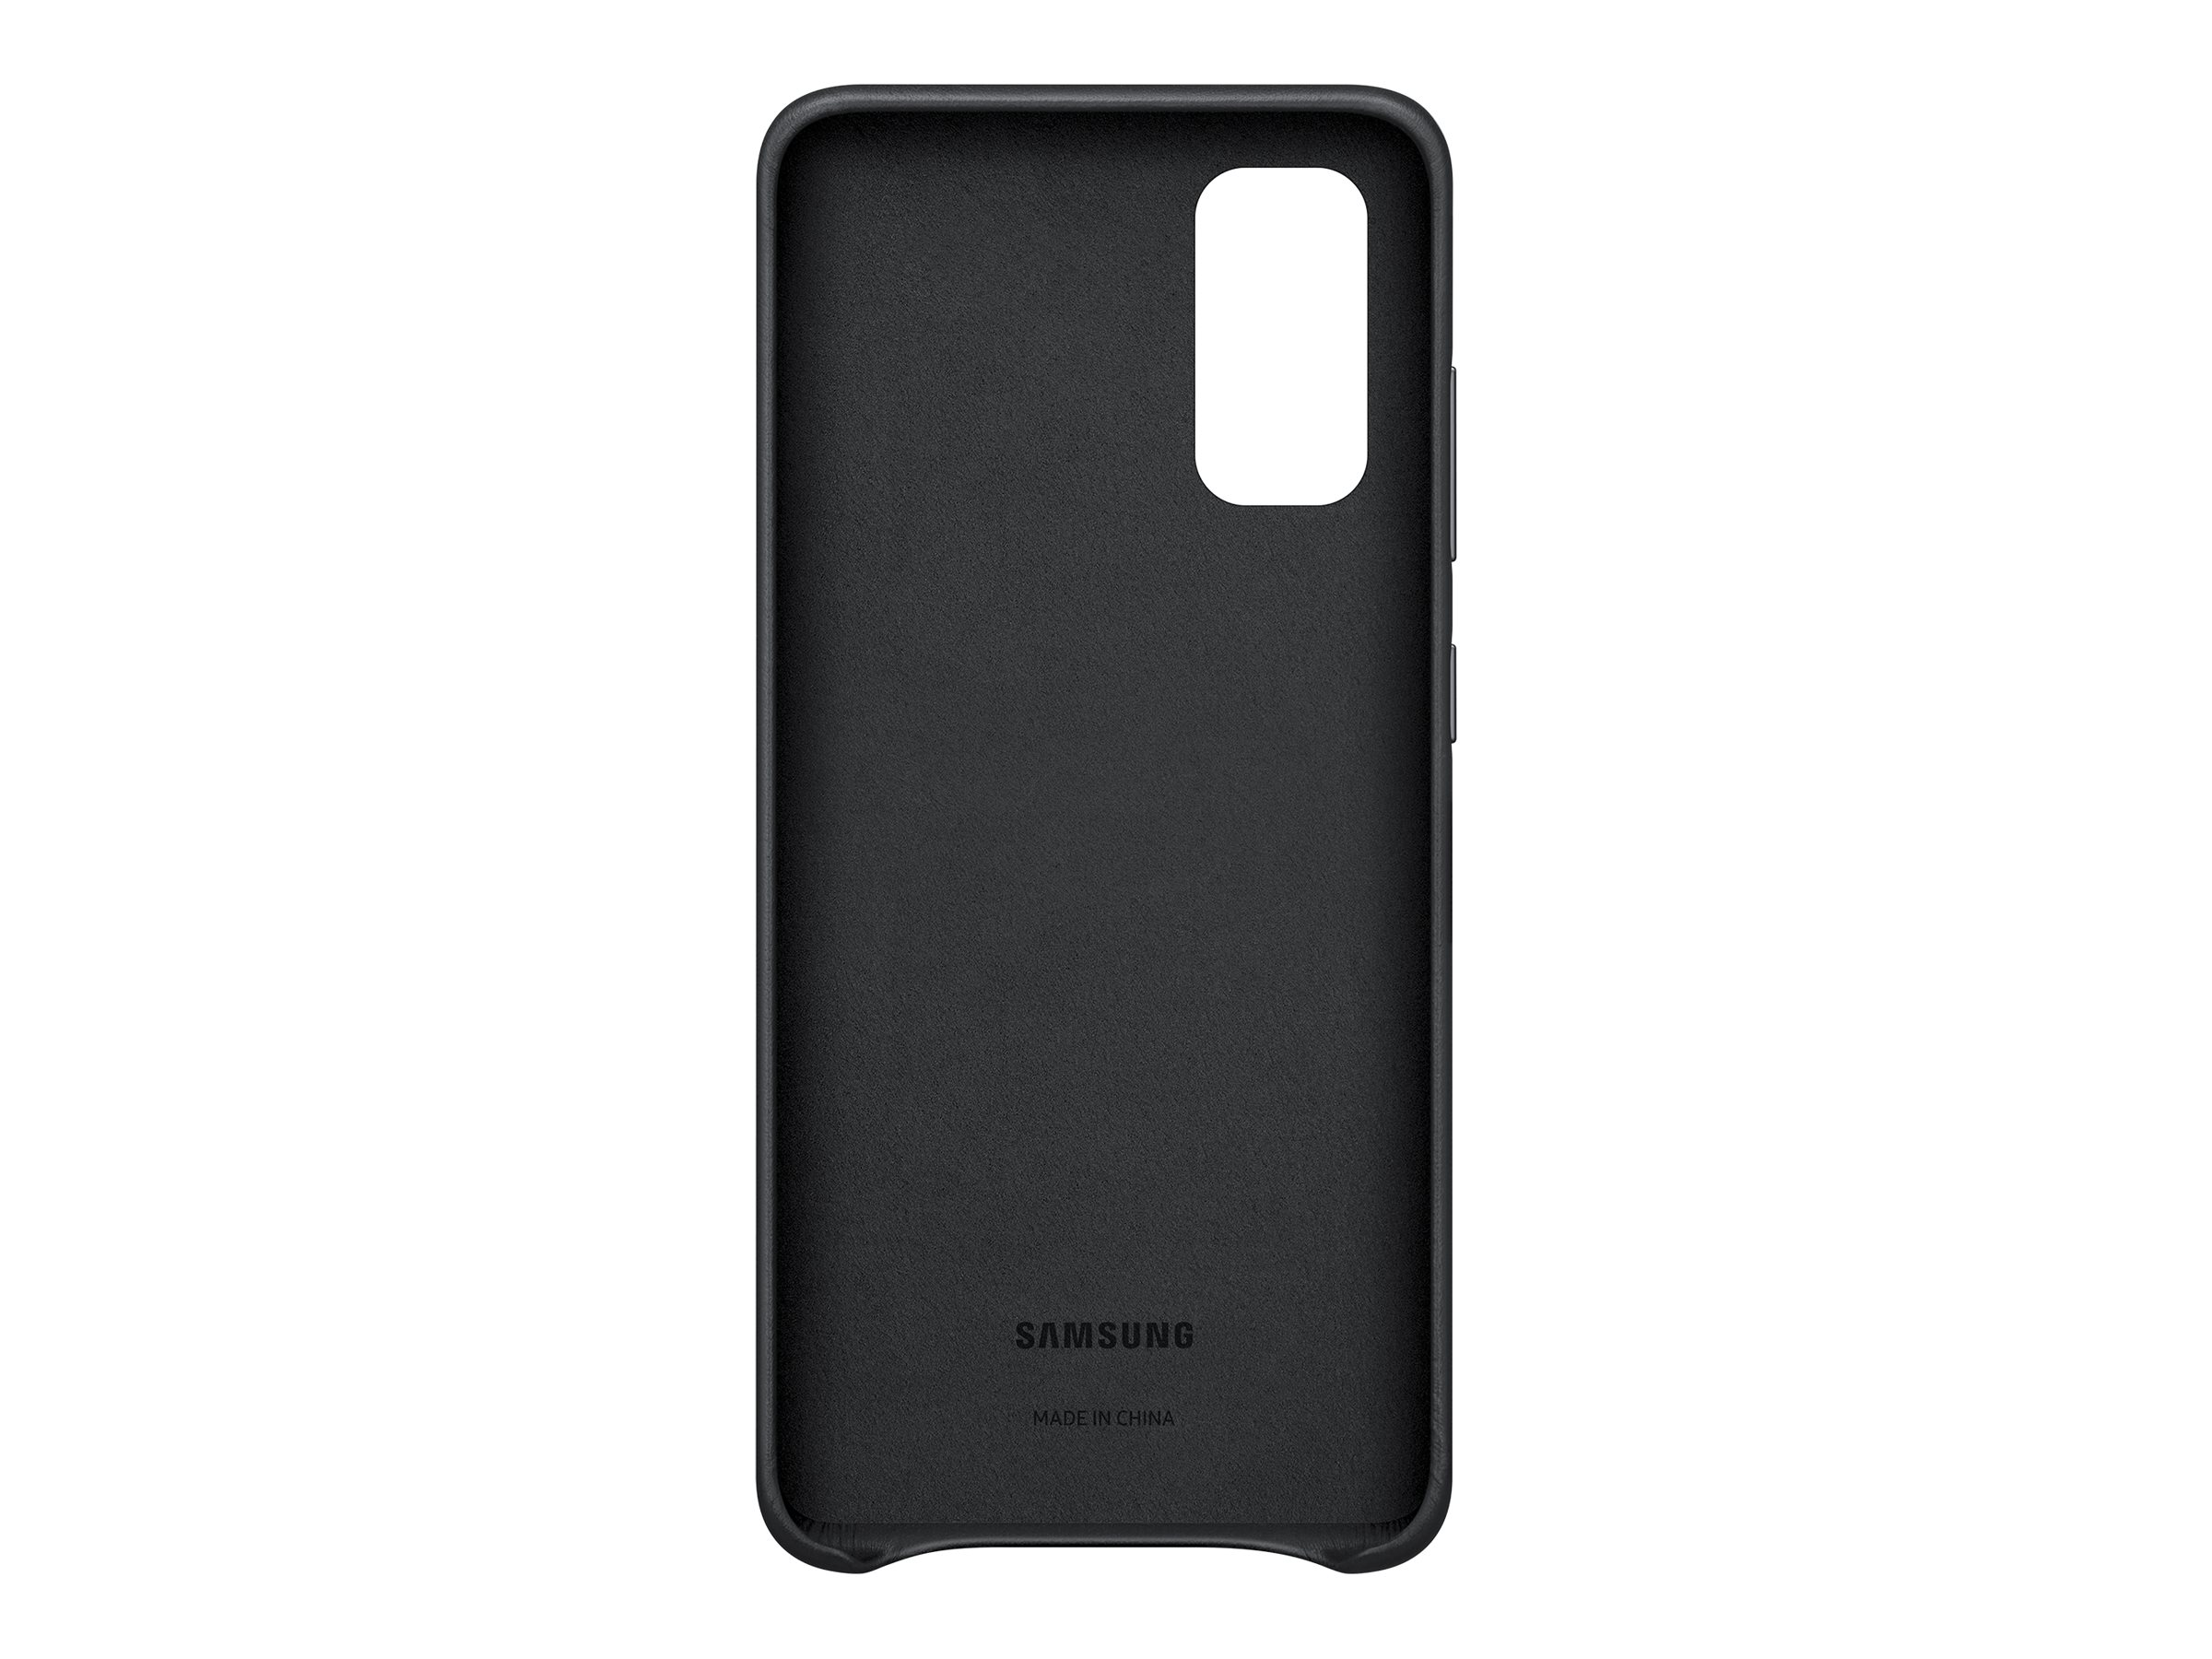 Samsung Leather Cover EF-VG980 - back cover for cell phone